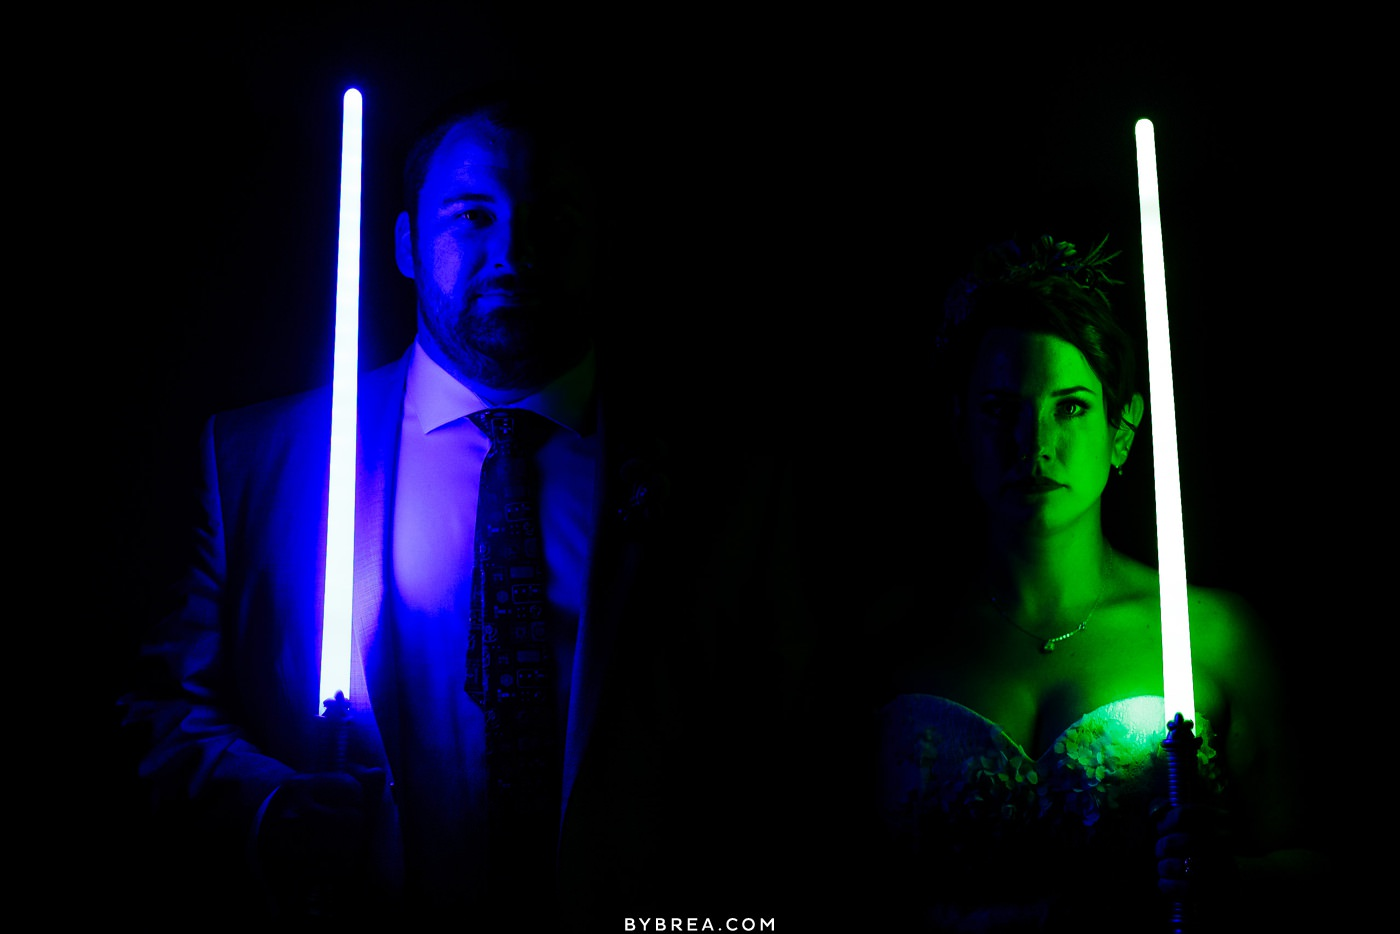 Star wars night shot with couple at Caboose Farm